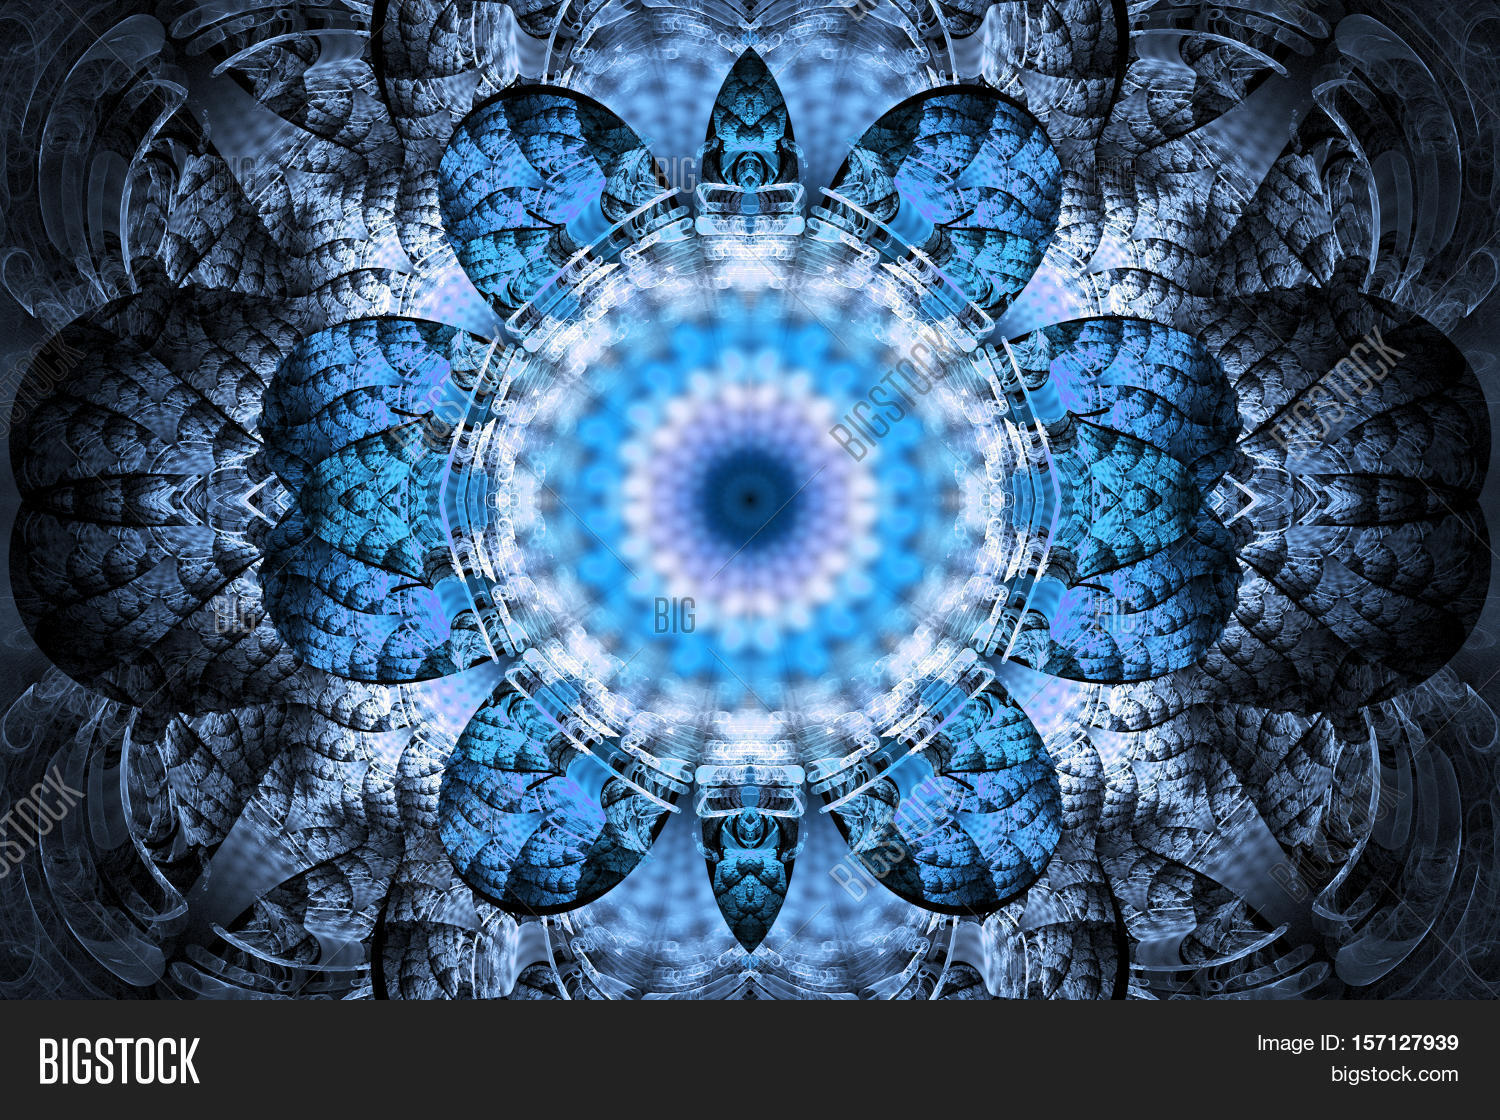 b41ff14ce Intricate symmetrical pattern in blue and white colors. Fantasy fractal  design for posters postcards wallpapers or t-shirts. Digital art. 3D  rendering.